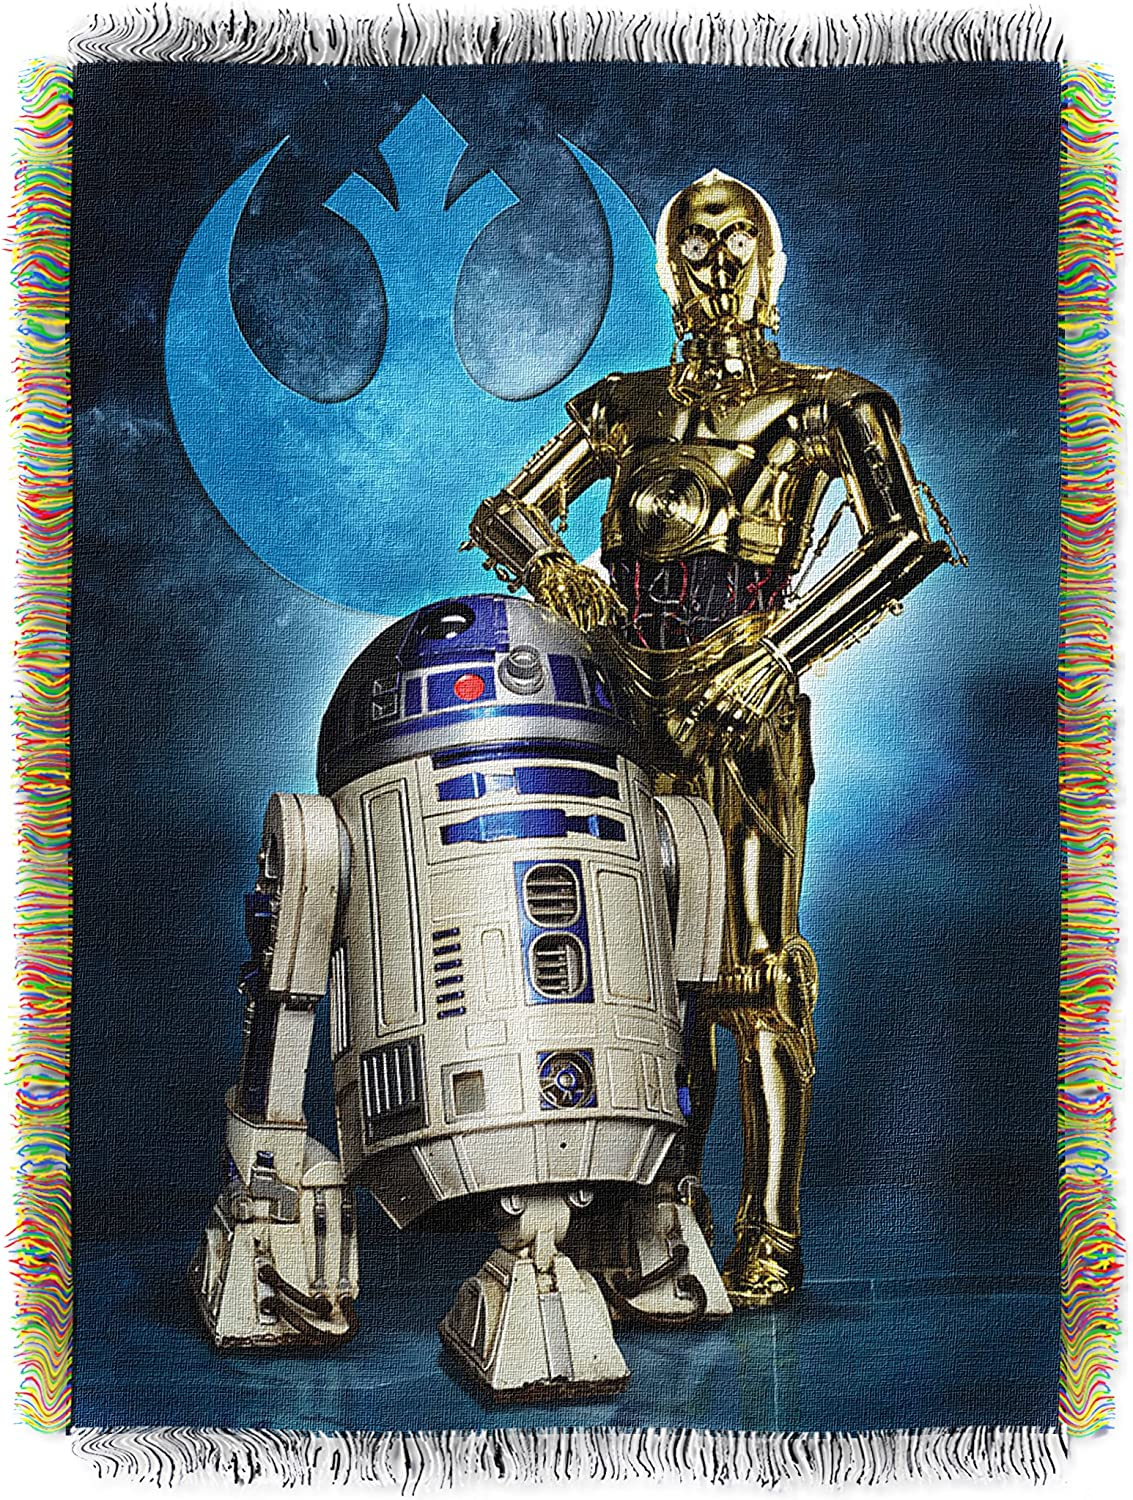 Disney's Star Wars, Droid bluees  Woven Tapestry Throw Blanket, 48  x 60 , Multi color